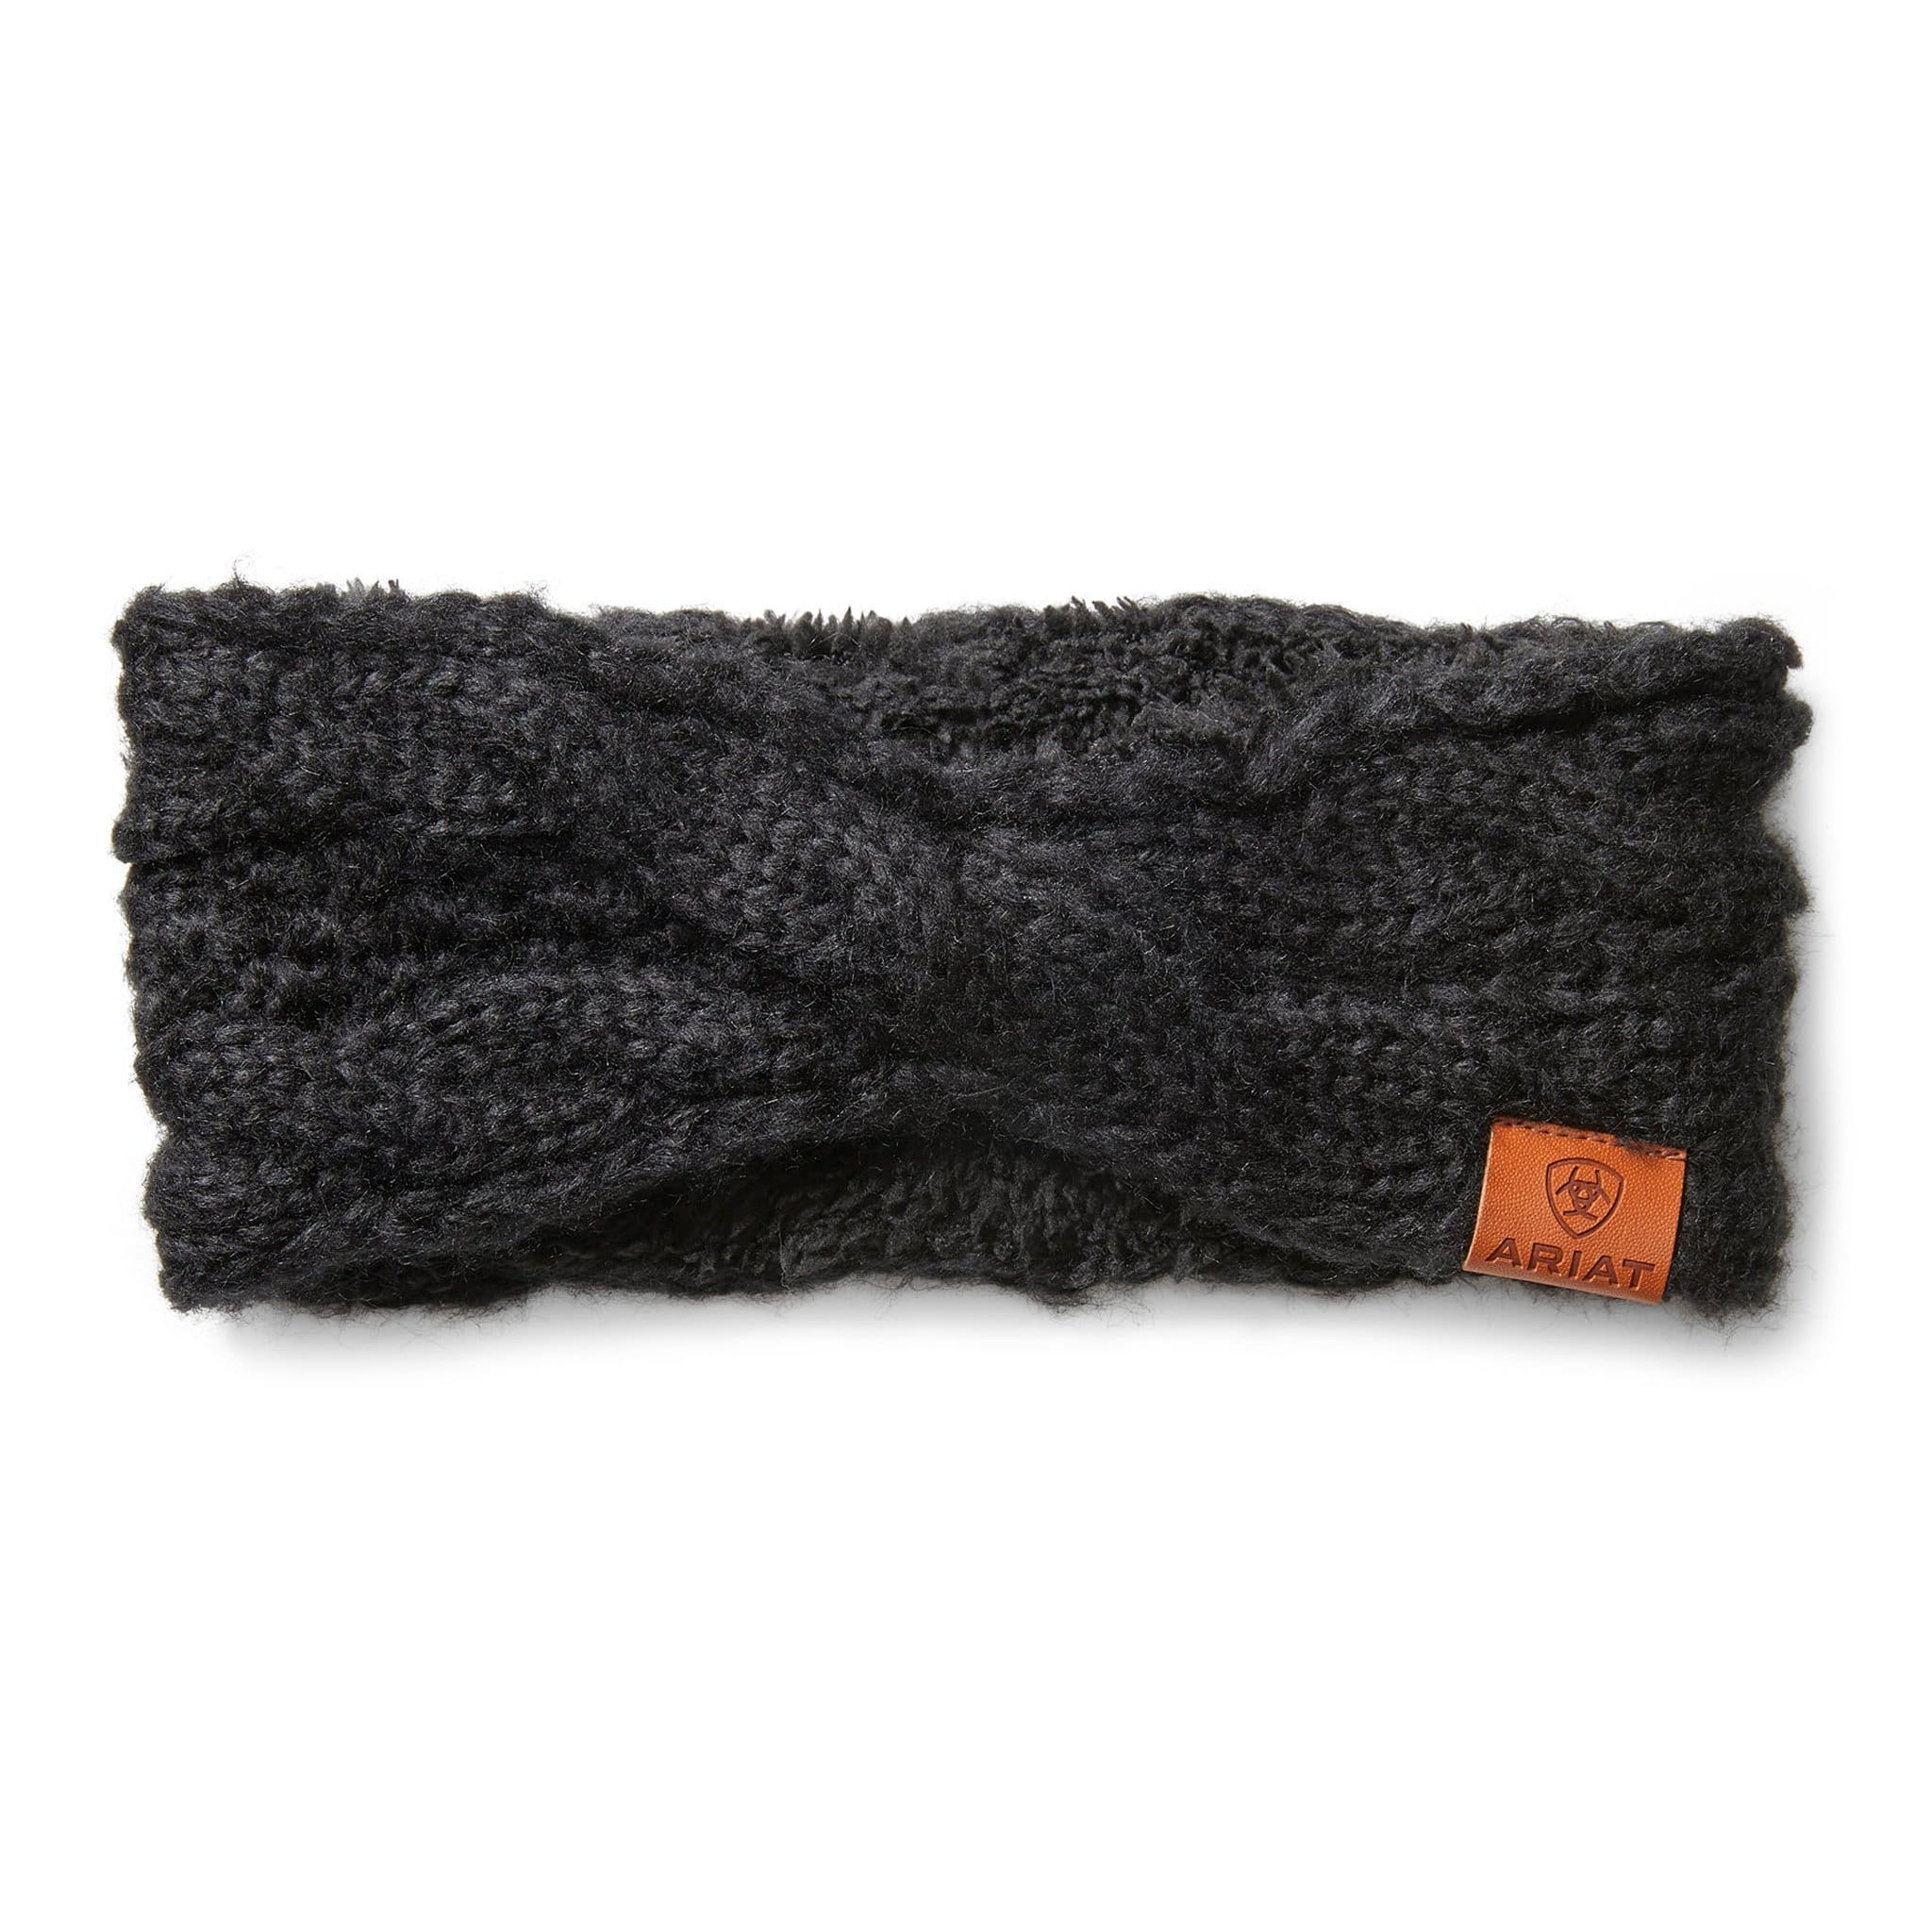 Ariat Unisex Cable Knit Headband 10033370 Black